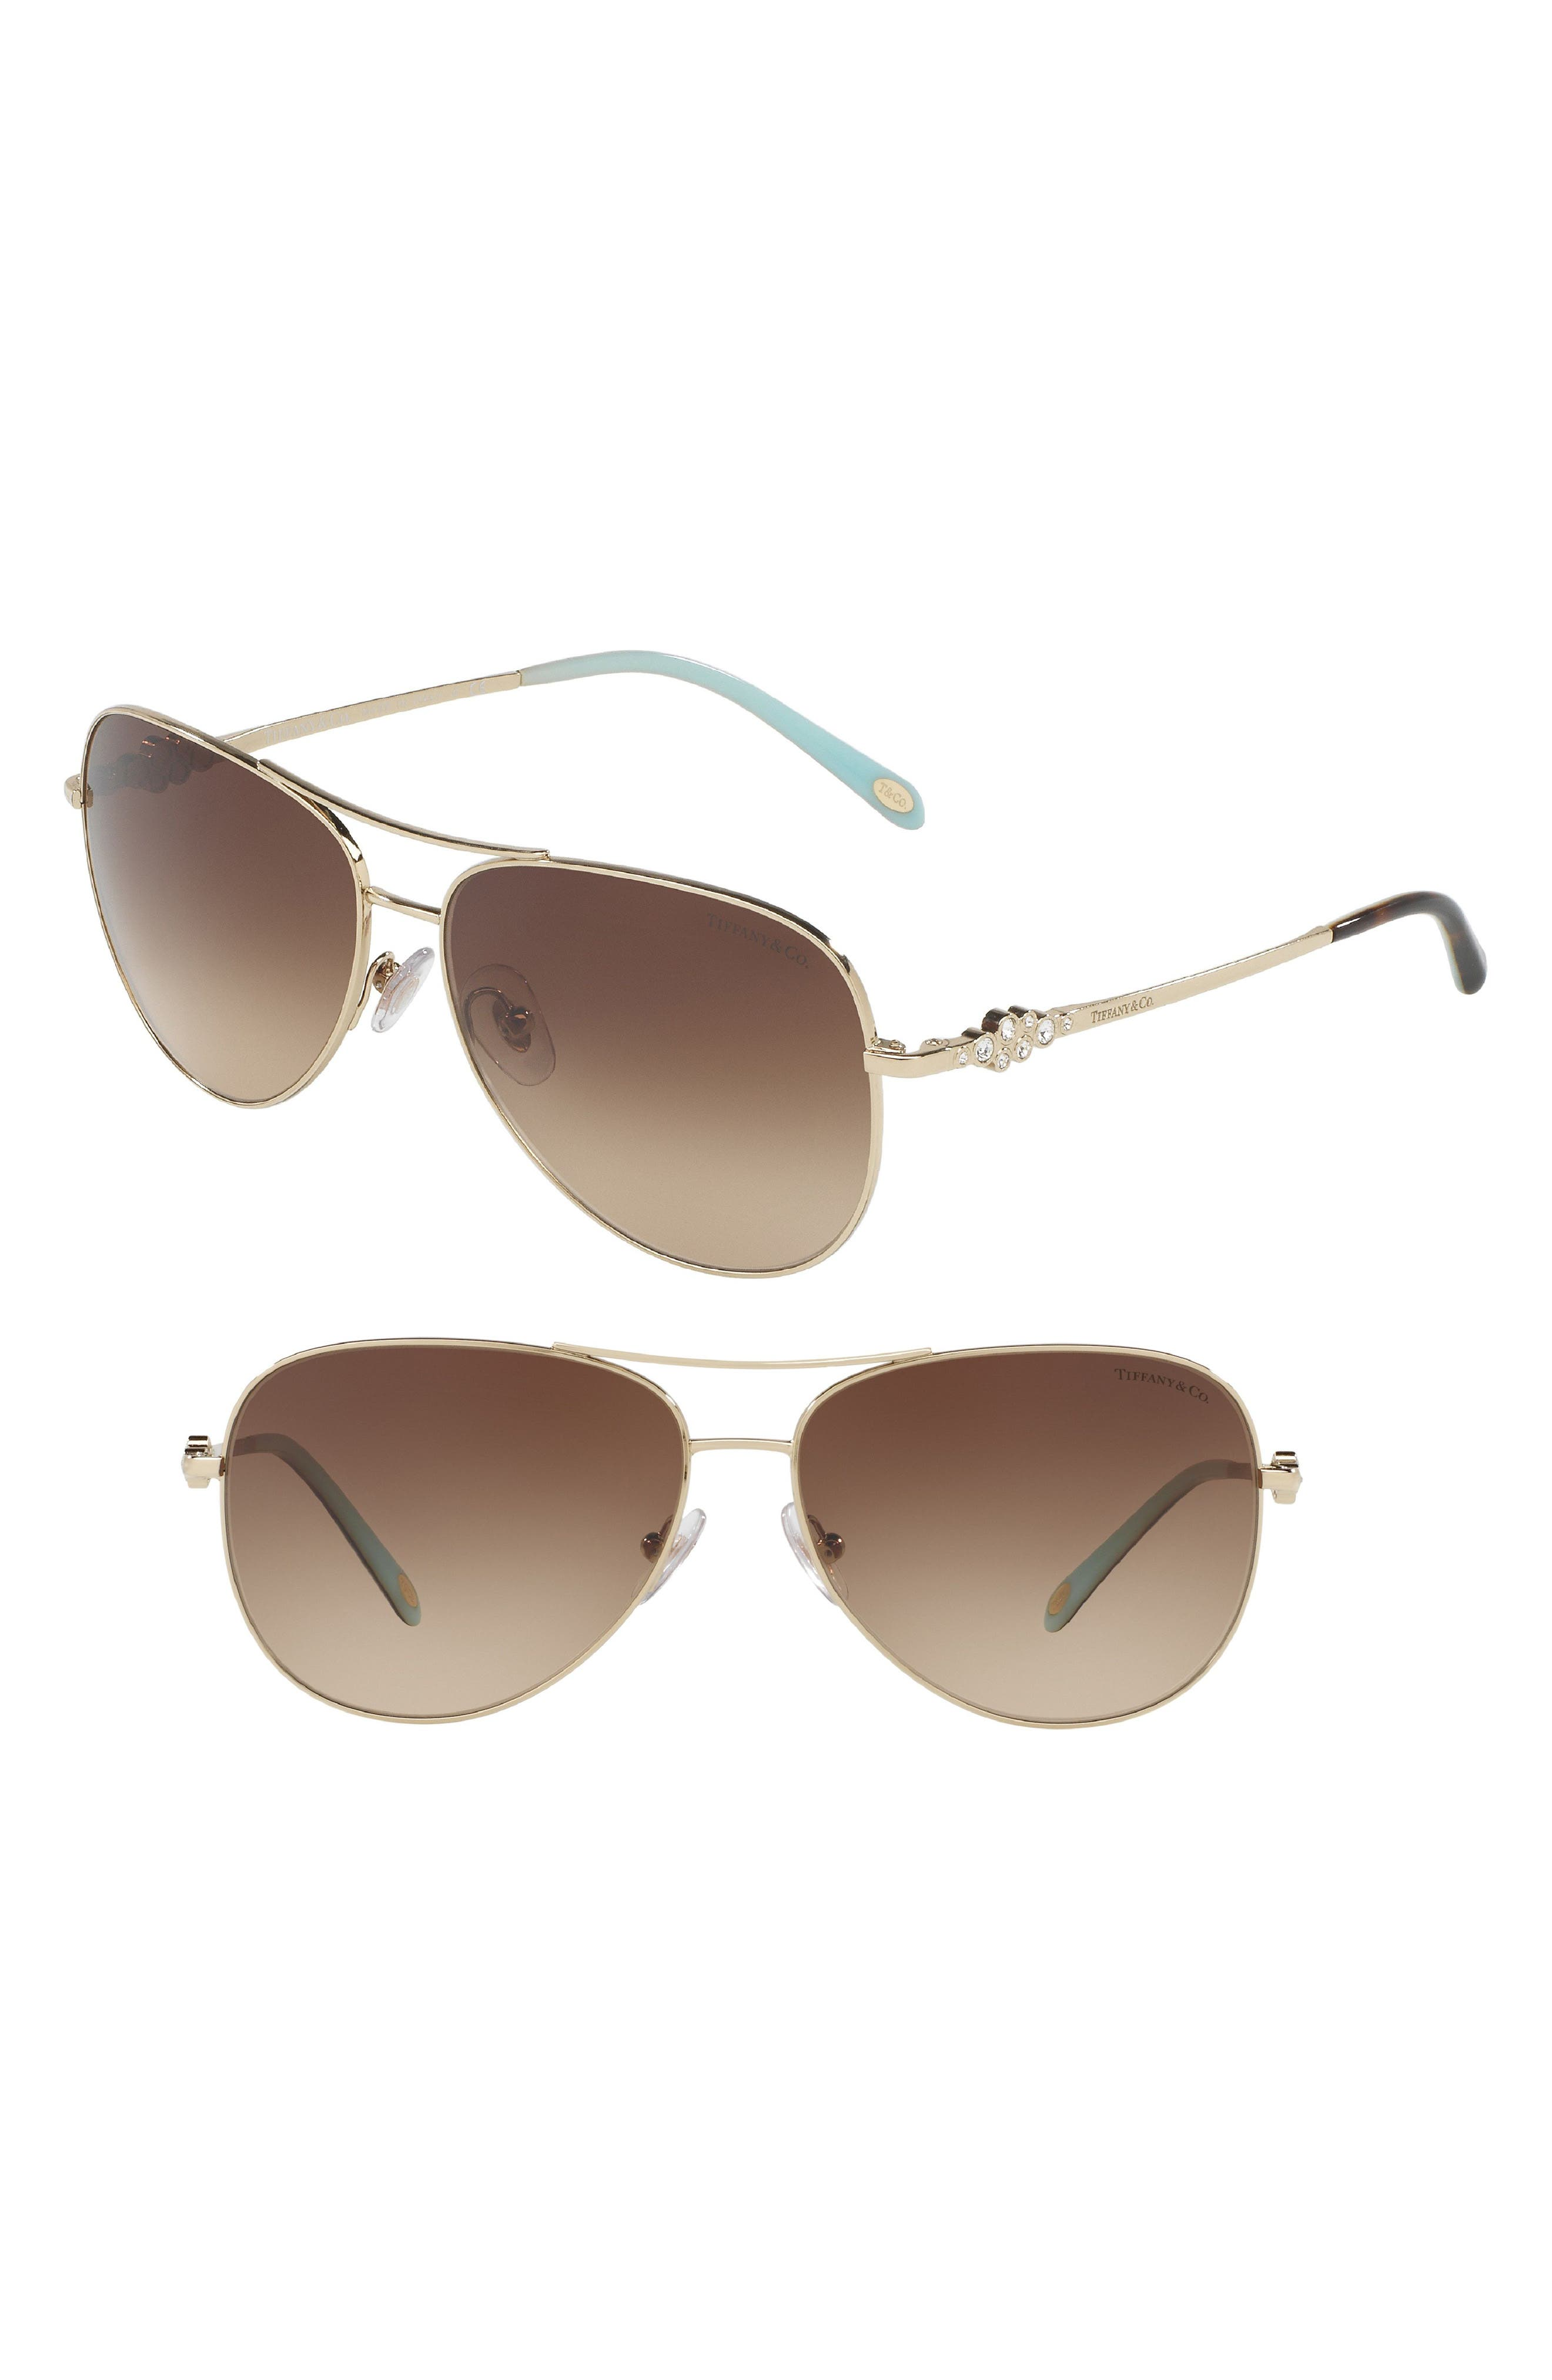 Tiffany 59mm Metal Aviator Sunglasses,                             Main thumbnail 1, color,                             PALE GOLD GRADIENT